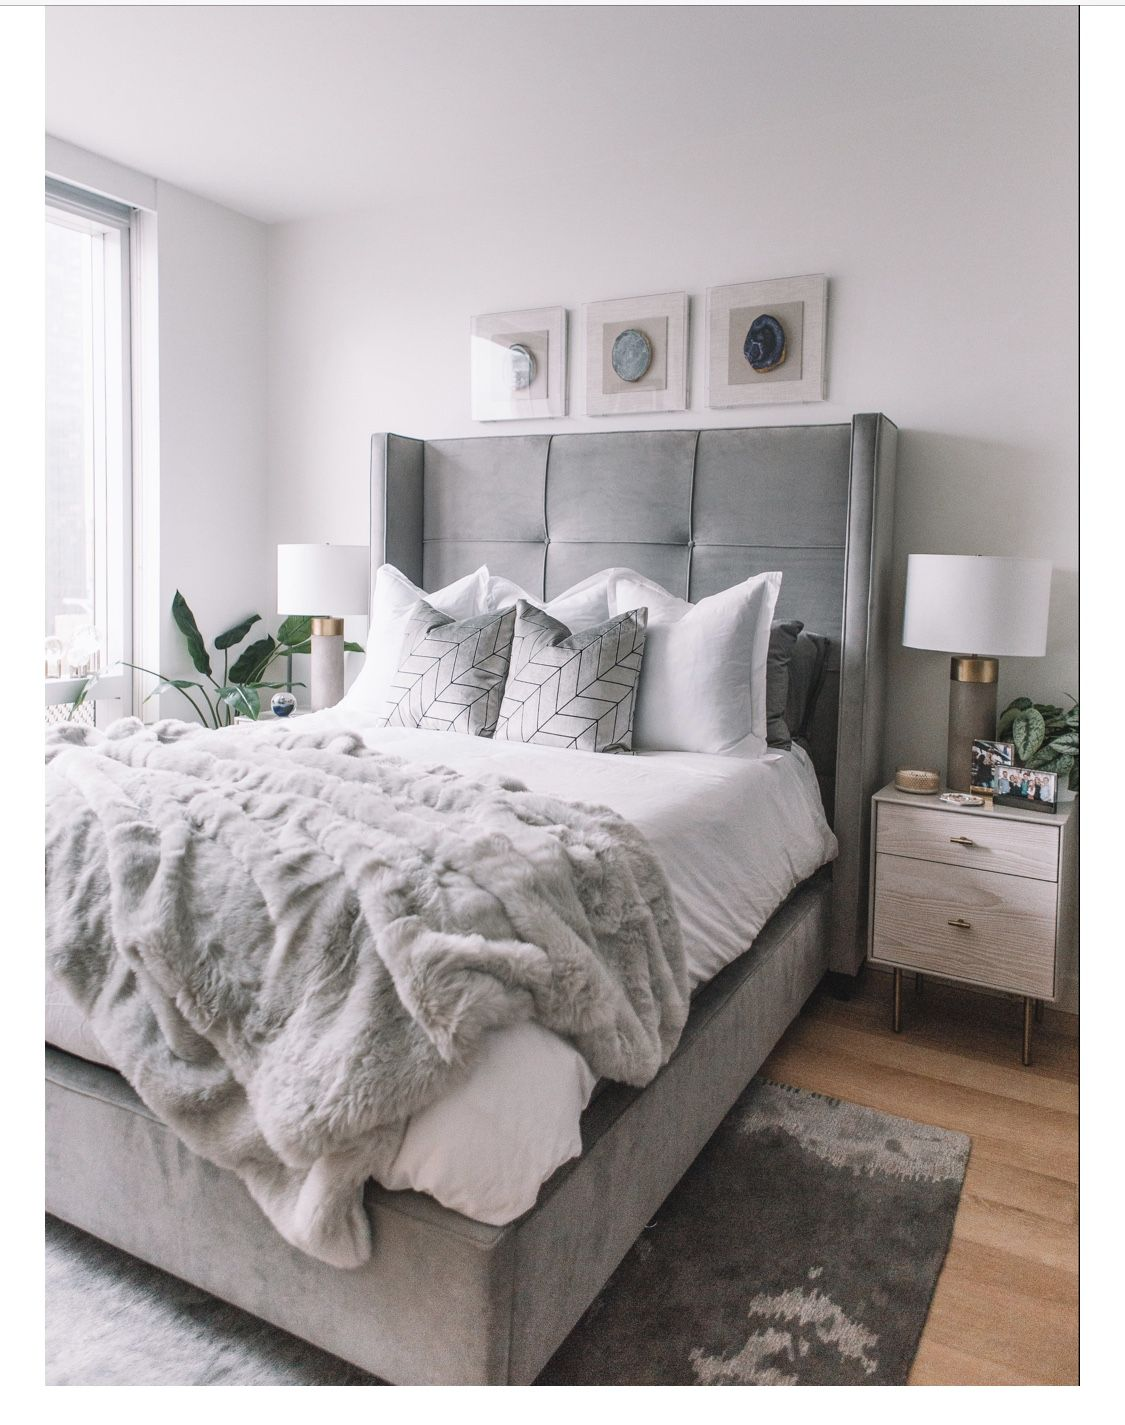 Pin by Zoë Mattox on Home Bedroom inspiration grey